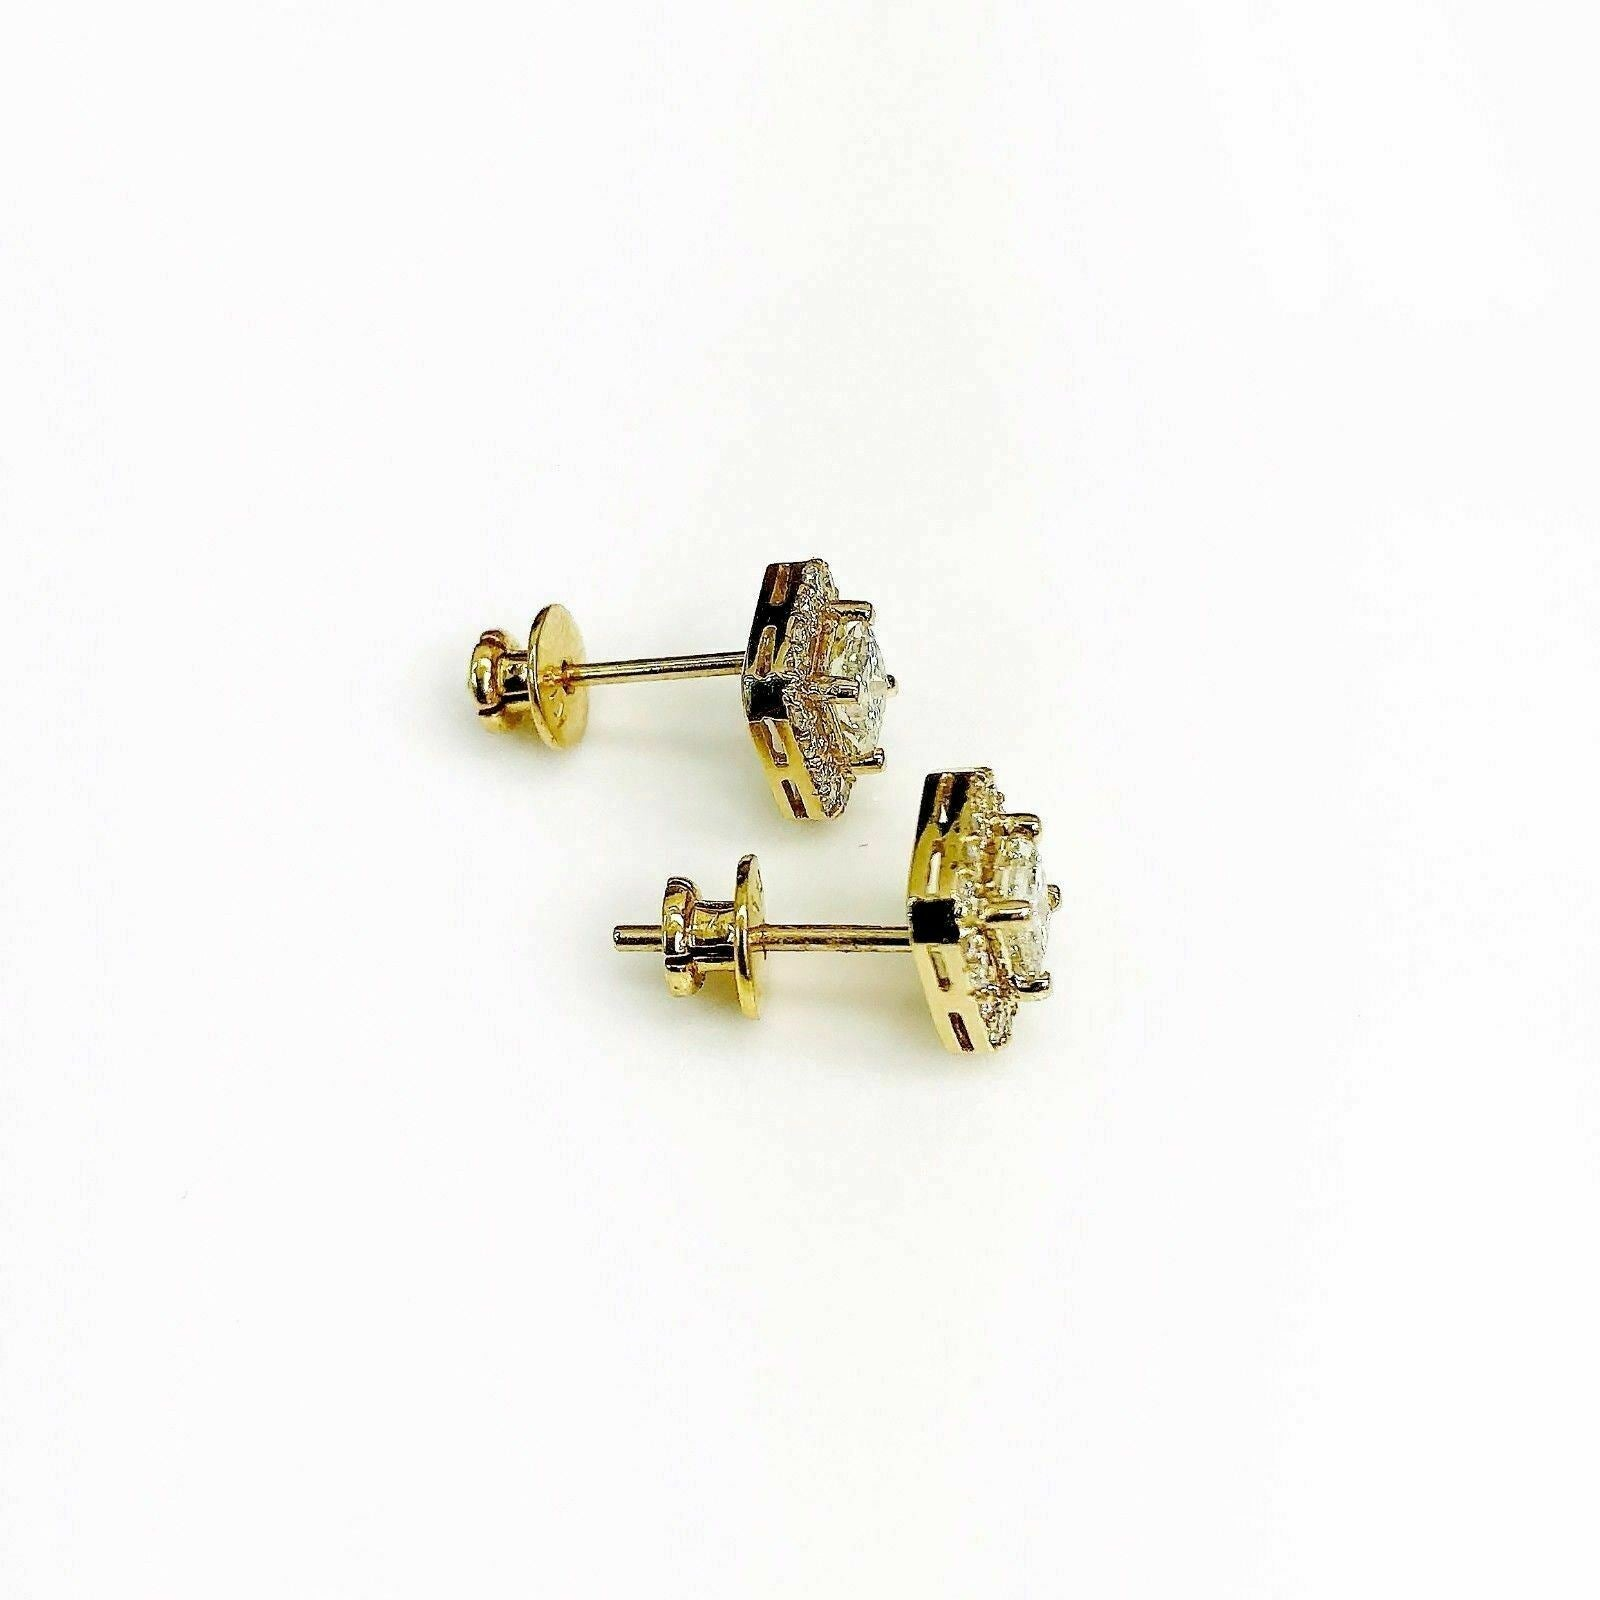 0.97 Carats t.w. Princess and Round Diamond Halo Earrings 14K Yellow Gold New